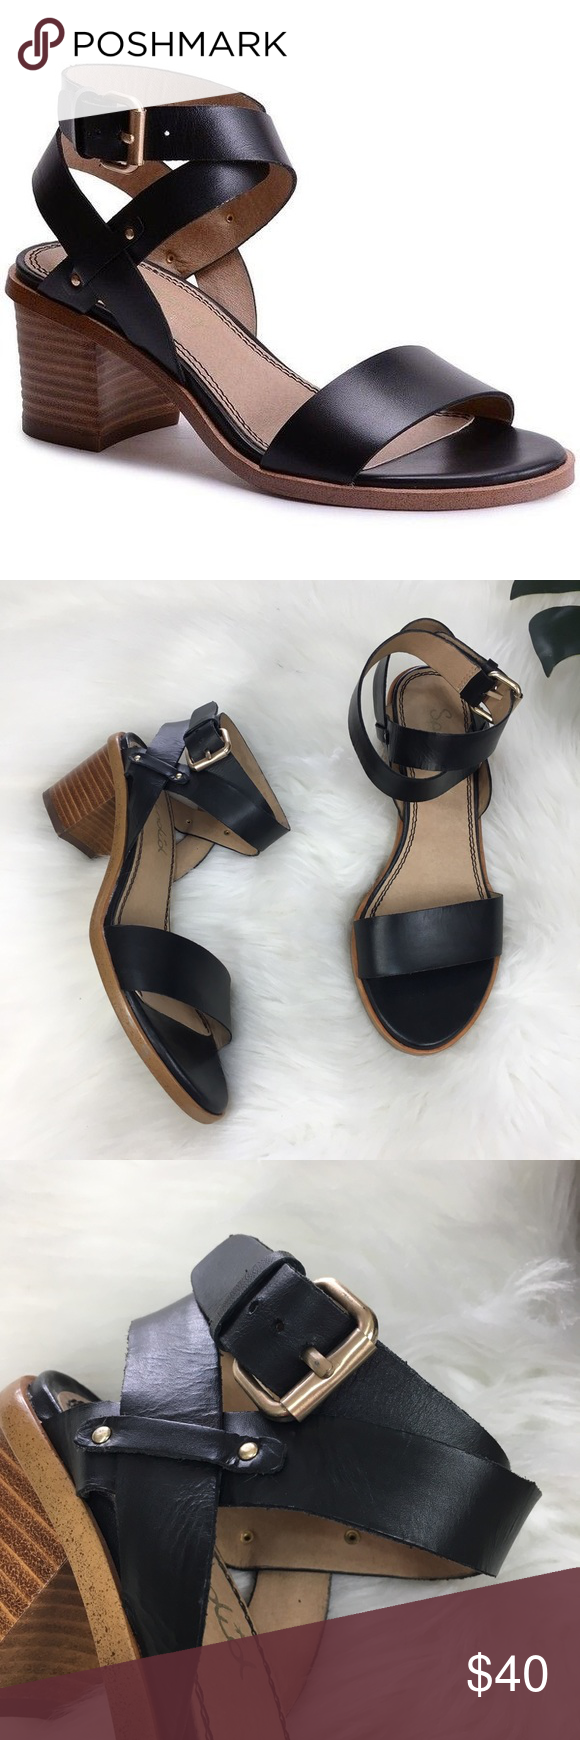 """ed29b9890e1 Splendid Kayman Leather Sandals In excellent pre loved condition Cute  Sandals 👡 2.5"""" Heel A"""